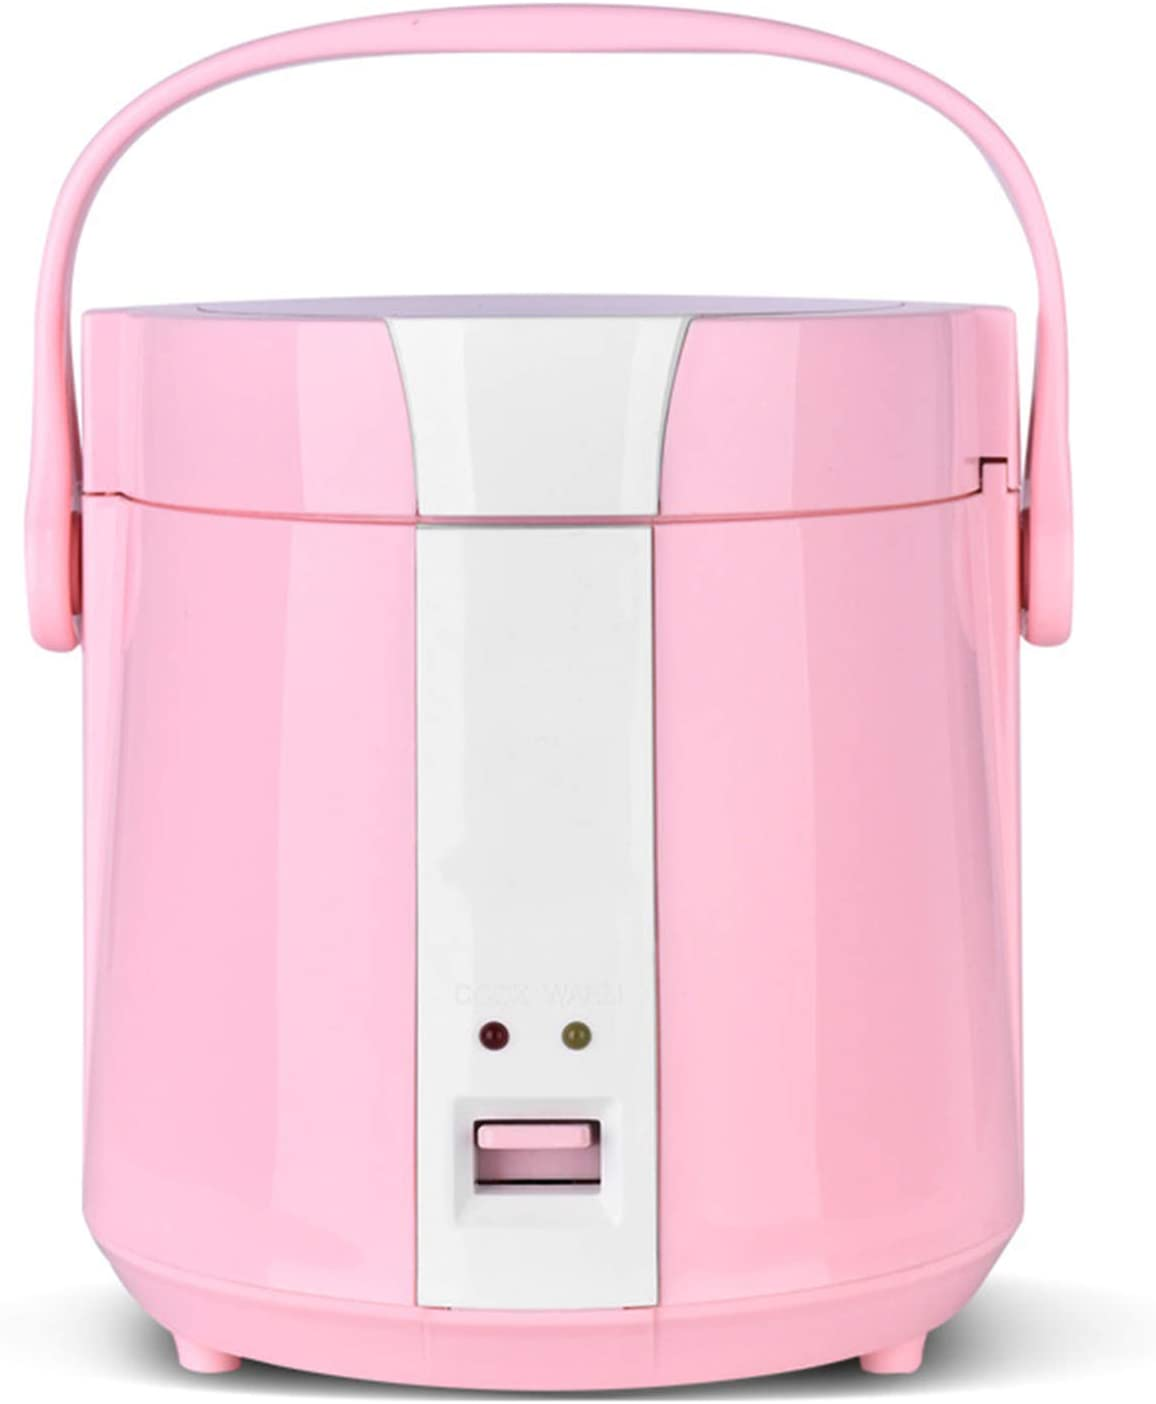 TYI -Portable Mini Rice Cooker, Portable Household Cookware, Household 1-2 People, Double Spray Non-Stick Inner Pot, 1.2L, 200W/220V,Pink